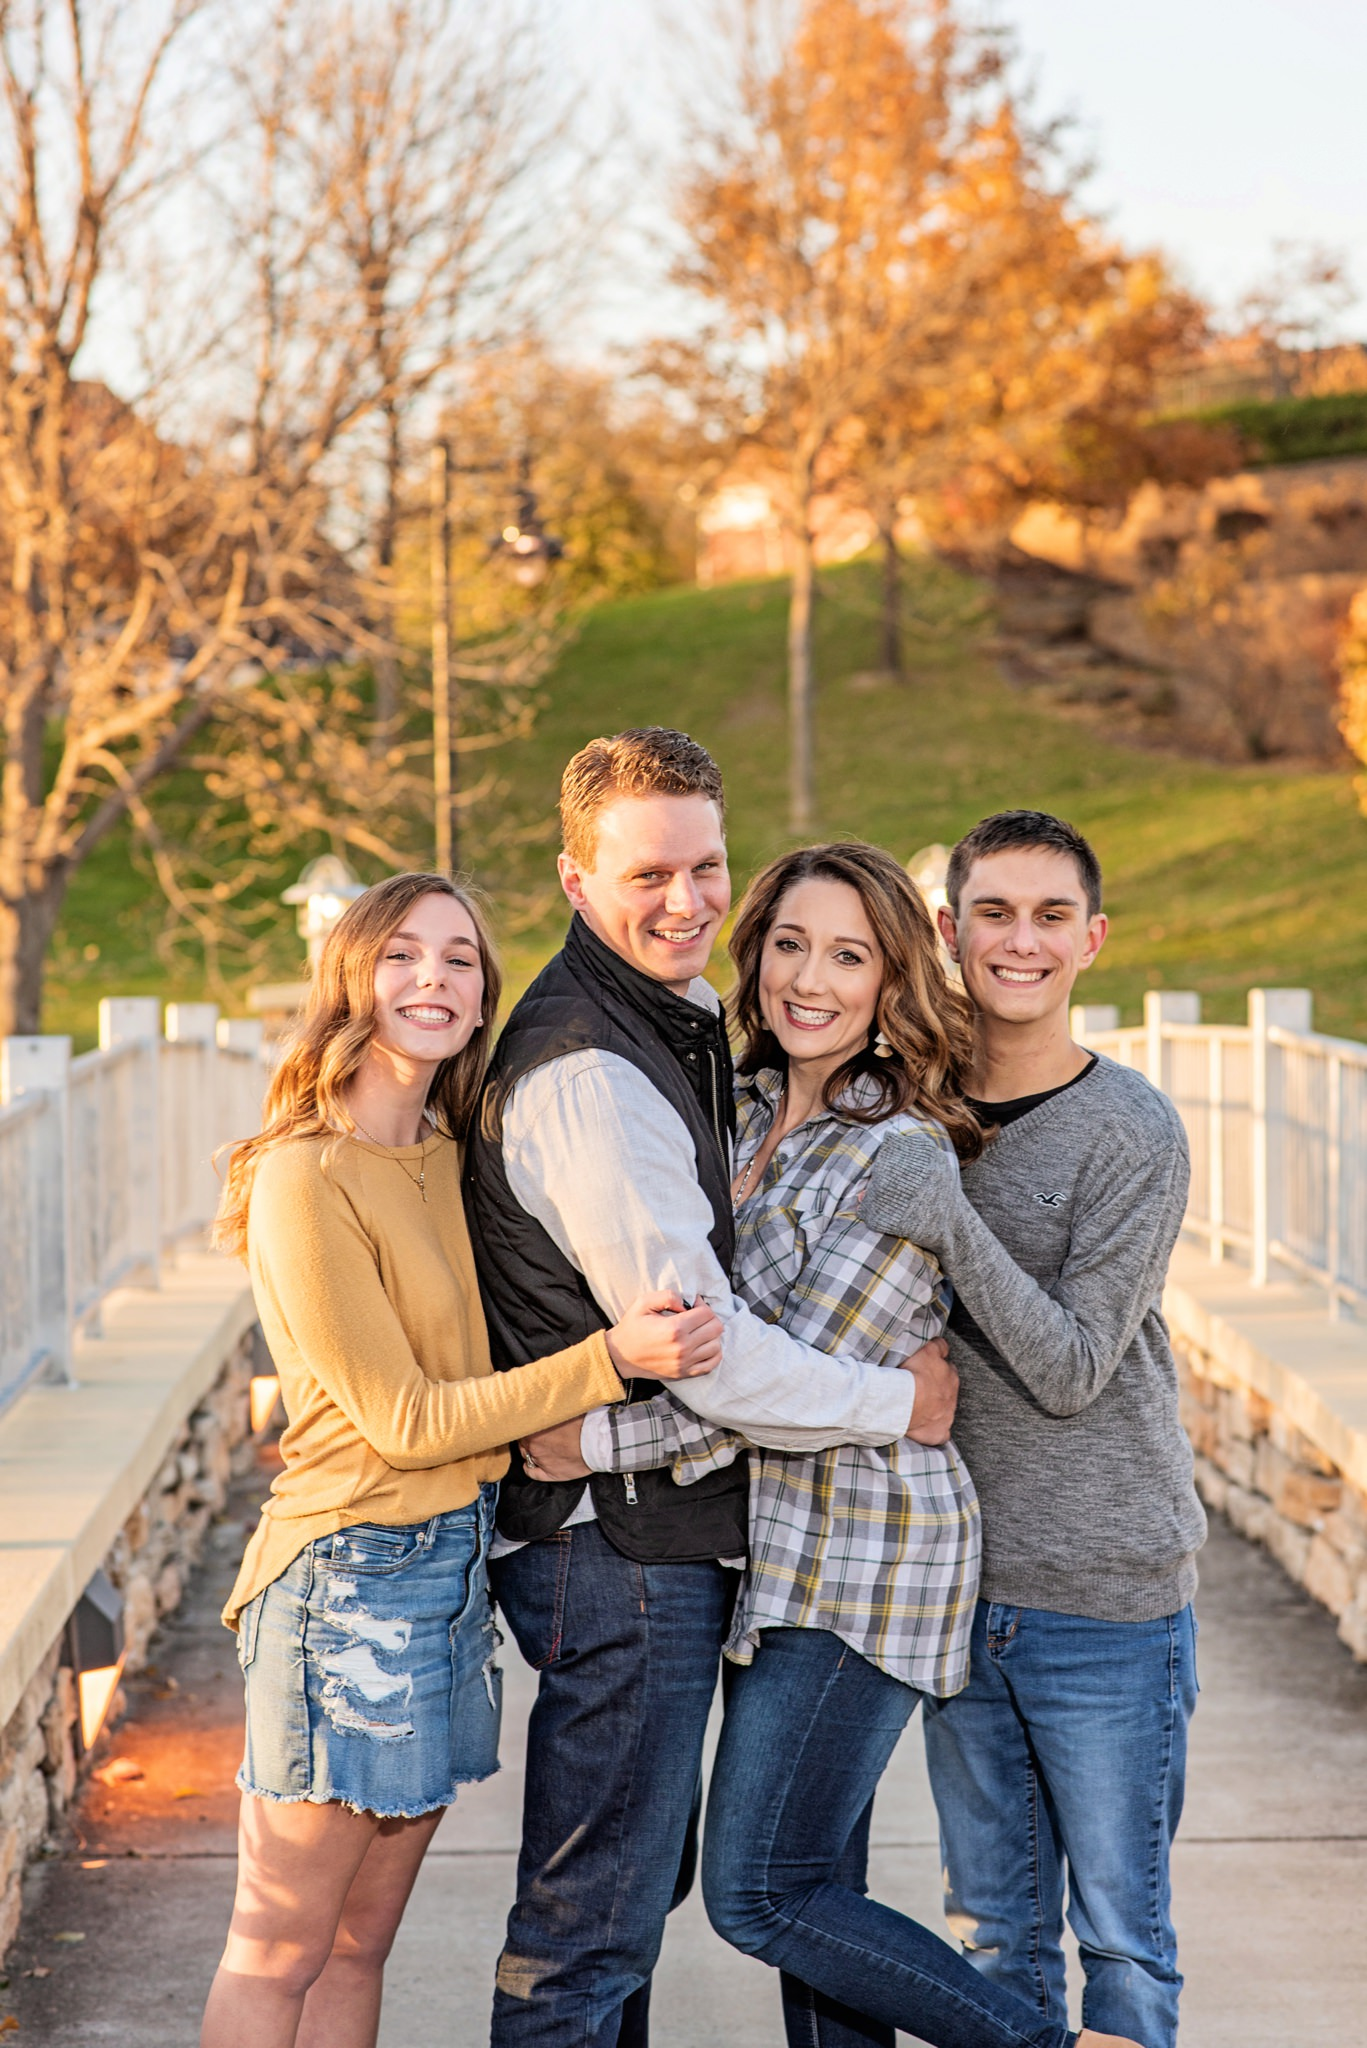 Wittwer-Family-Rotella-Photography-2018-45_WEB.jpg